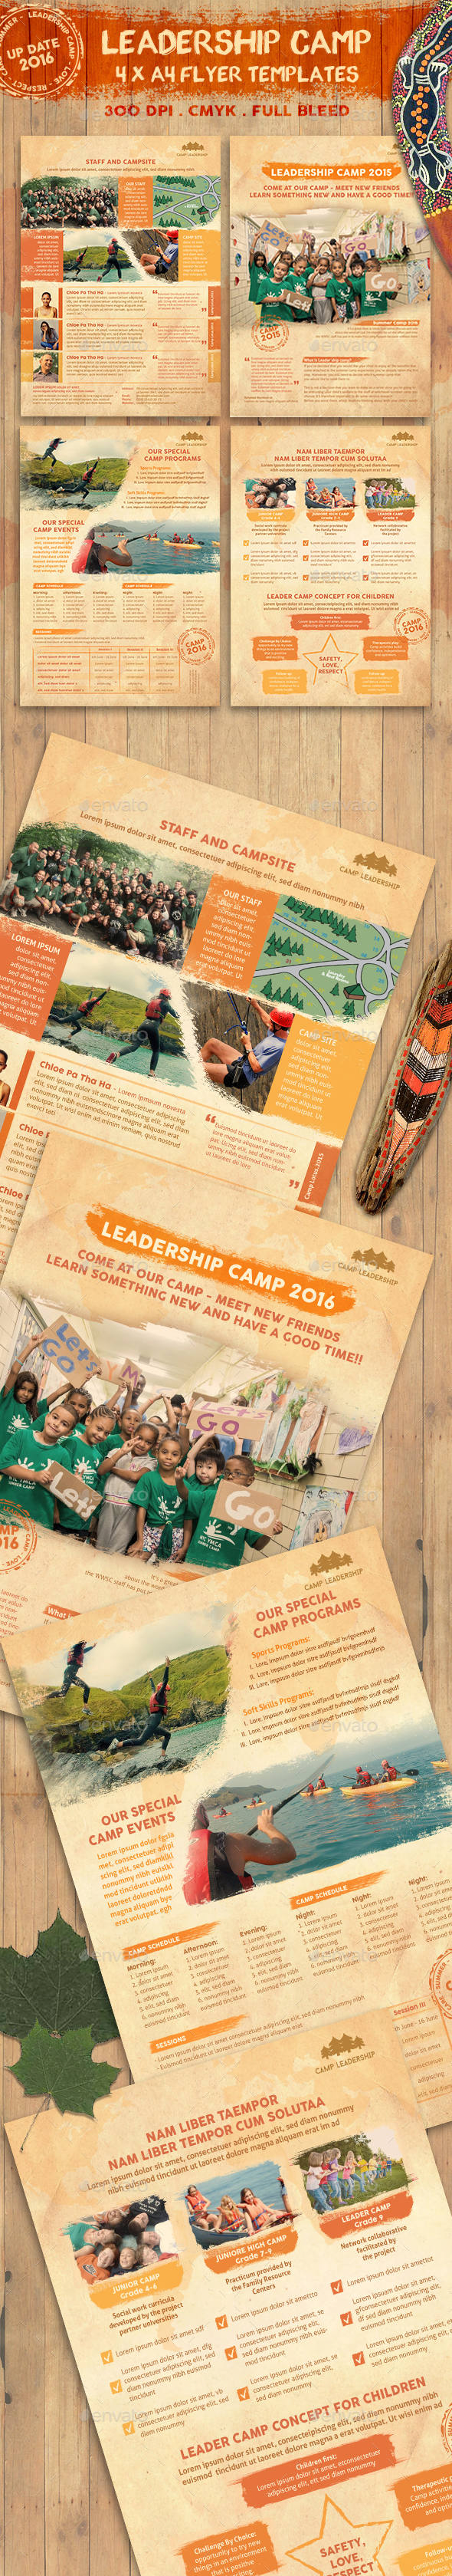 Summer Leadership Camp - Holidays Events